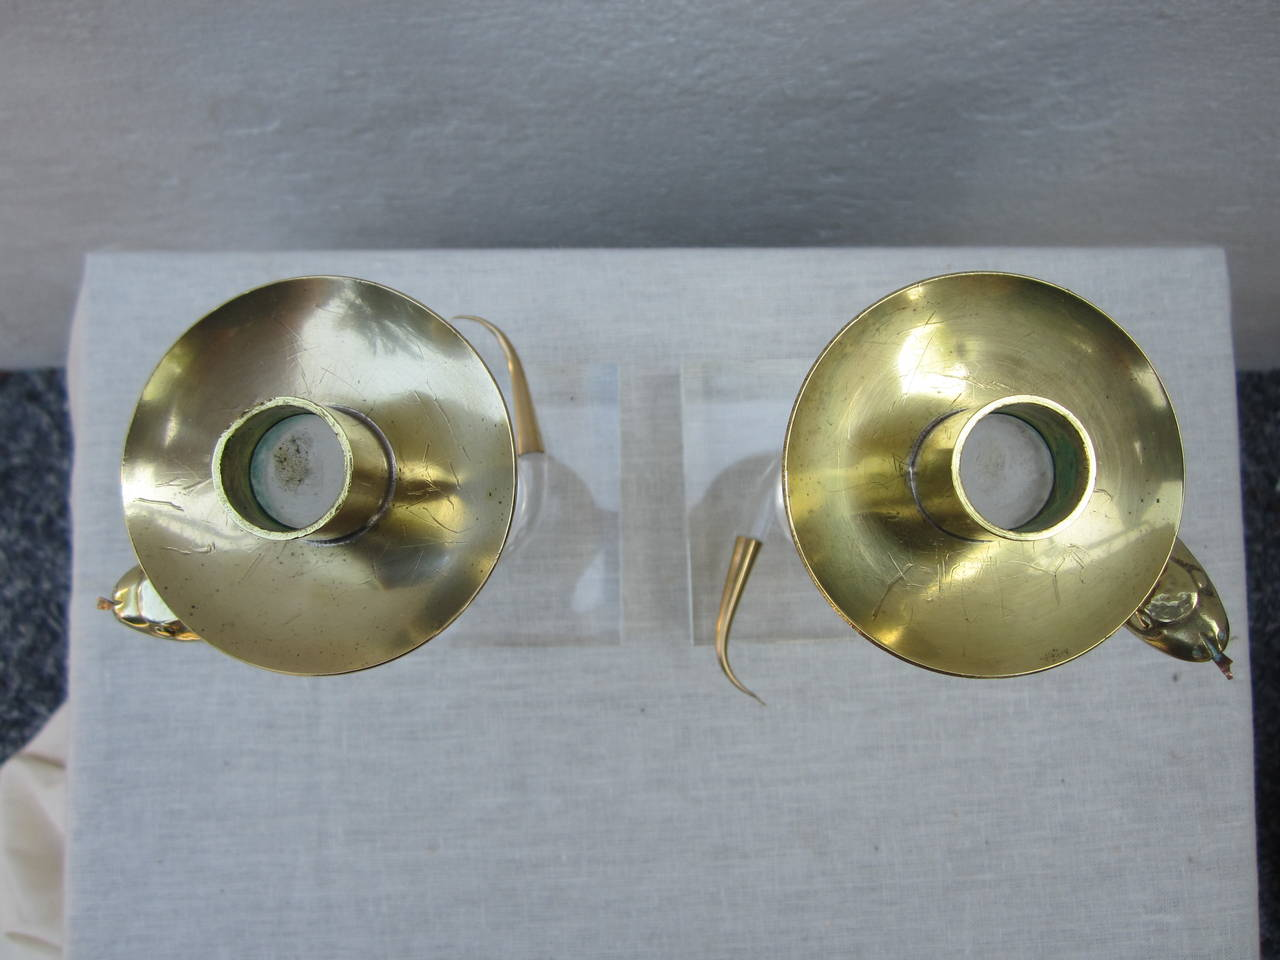 Pair of Brass and Lucite Candlesticks by Allesandro Albrizzi For Sale 2